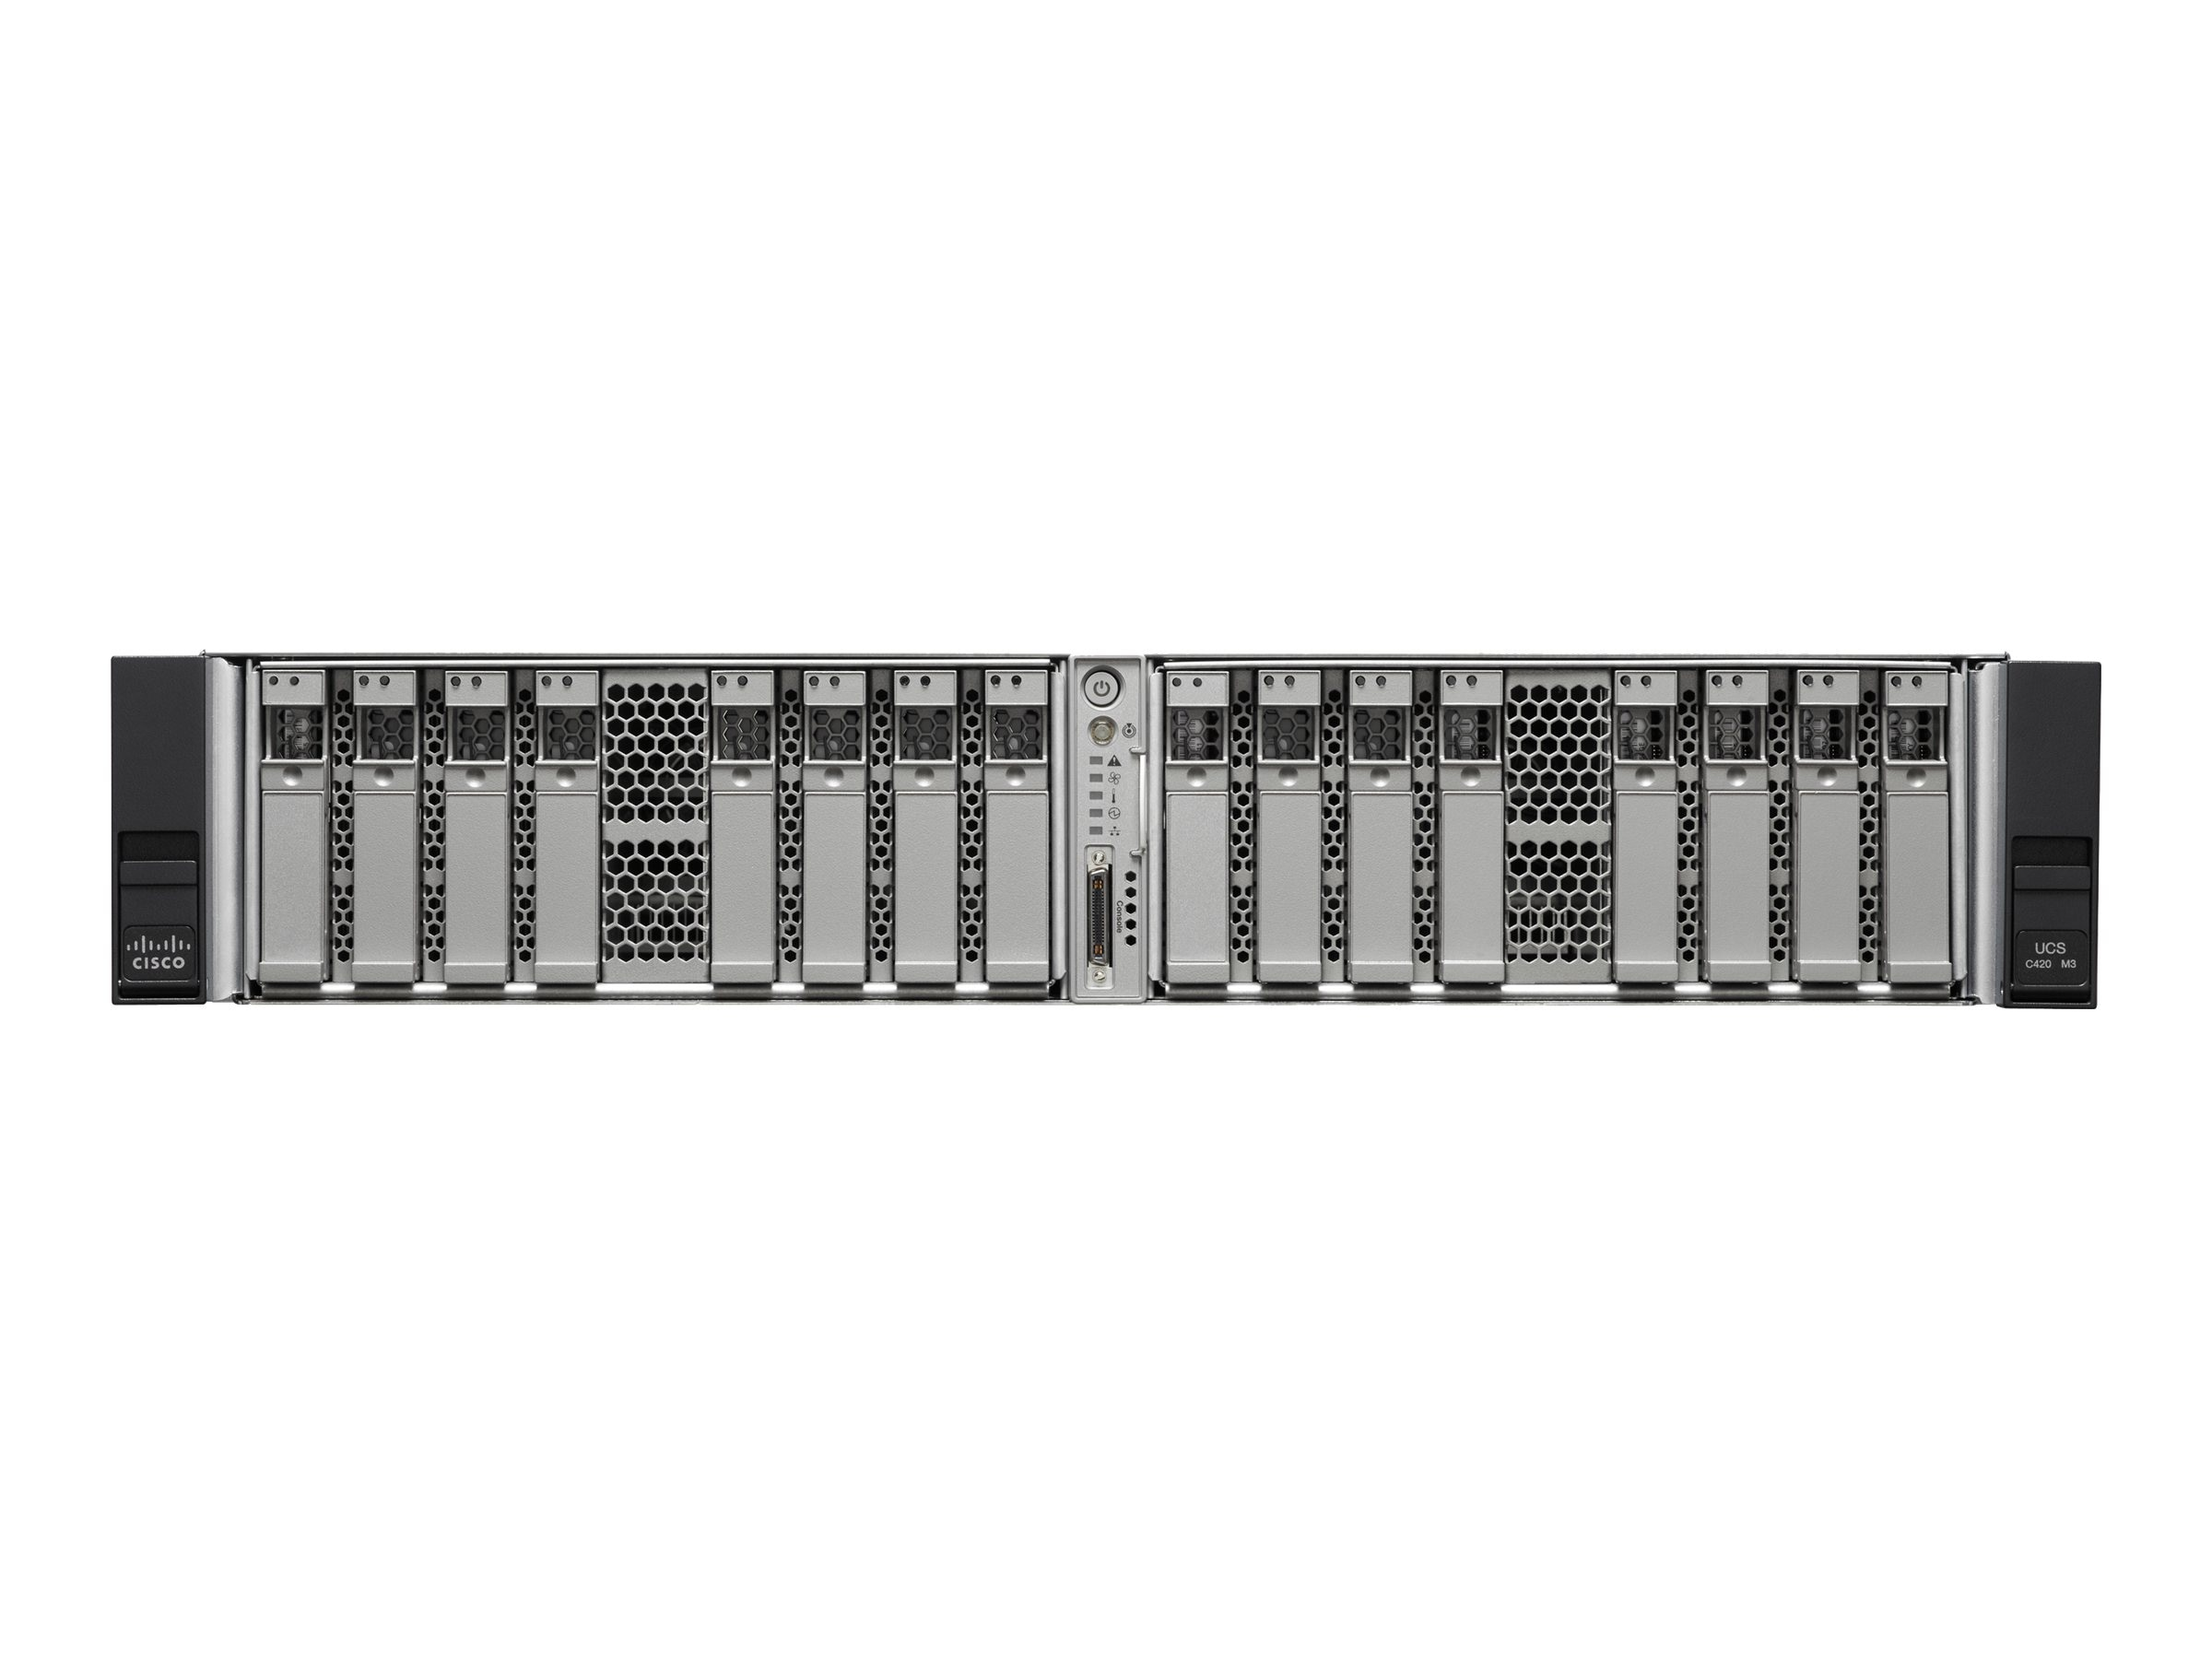 Cisco Barebones, UCS C420 M3 No CPU, Memory, HDDs, SSDs, PCIe, or Rail Kit, UCSC-C420-M3, 15007310, Barebones Systems